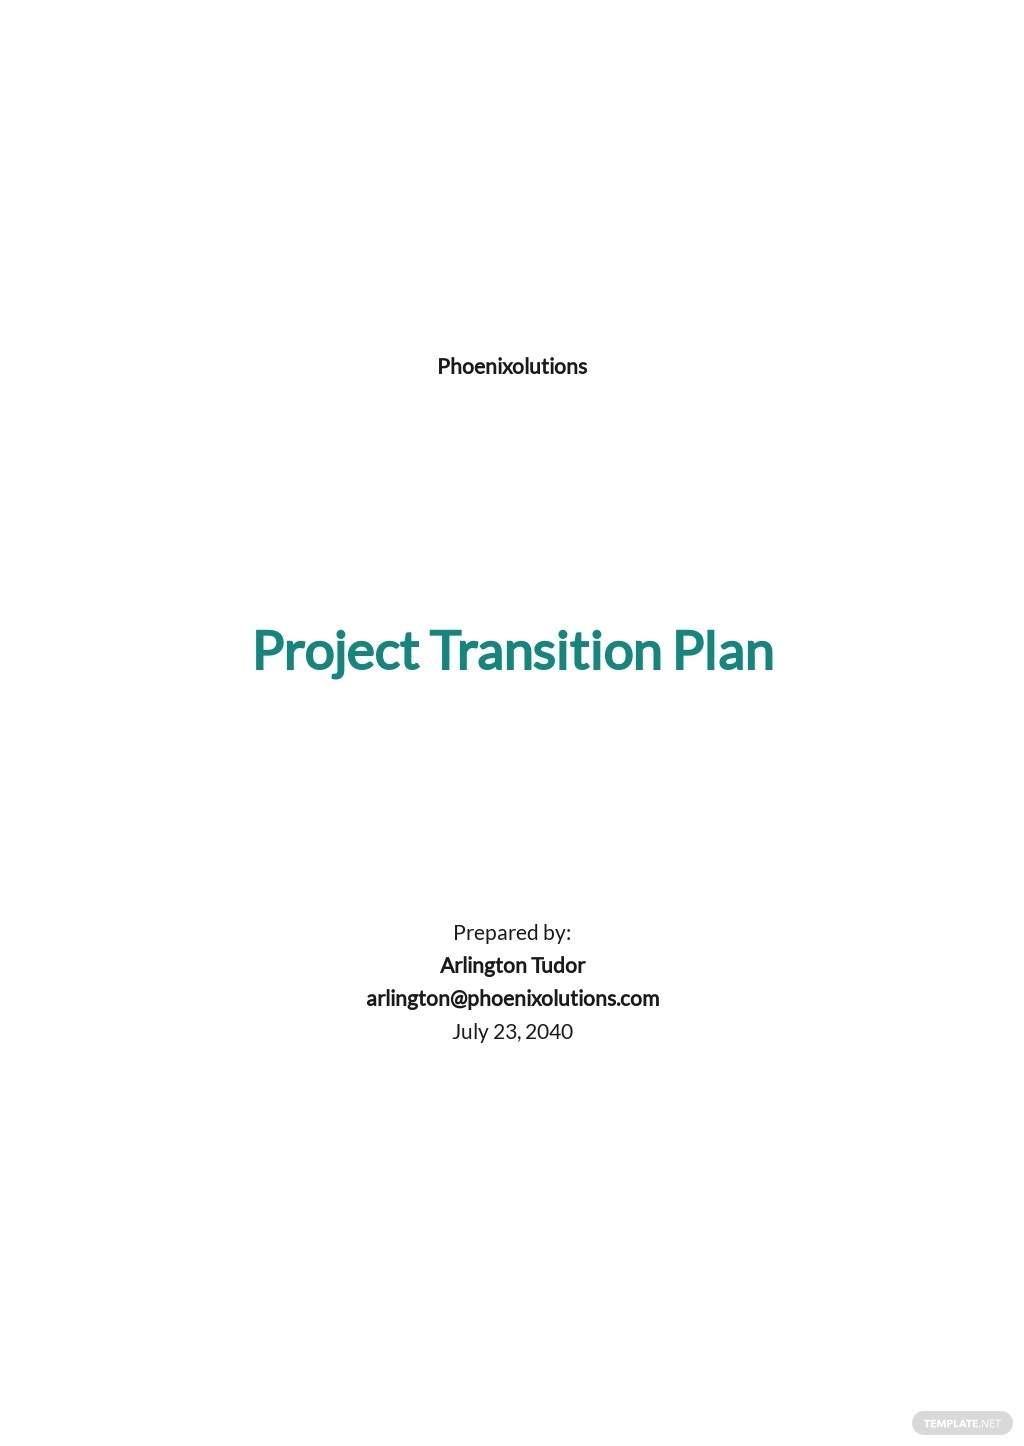 Project Transition Plan Template